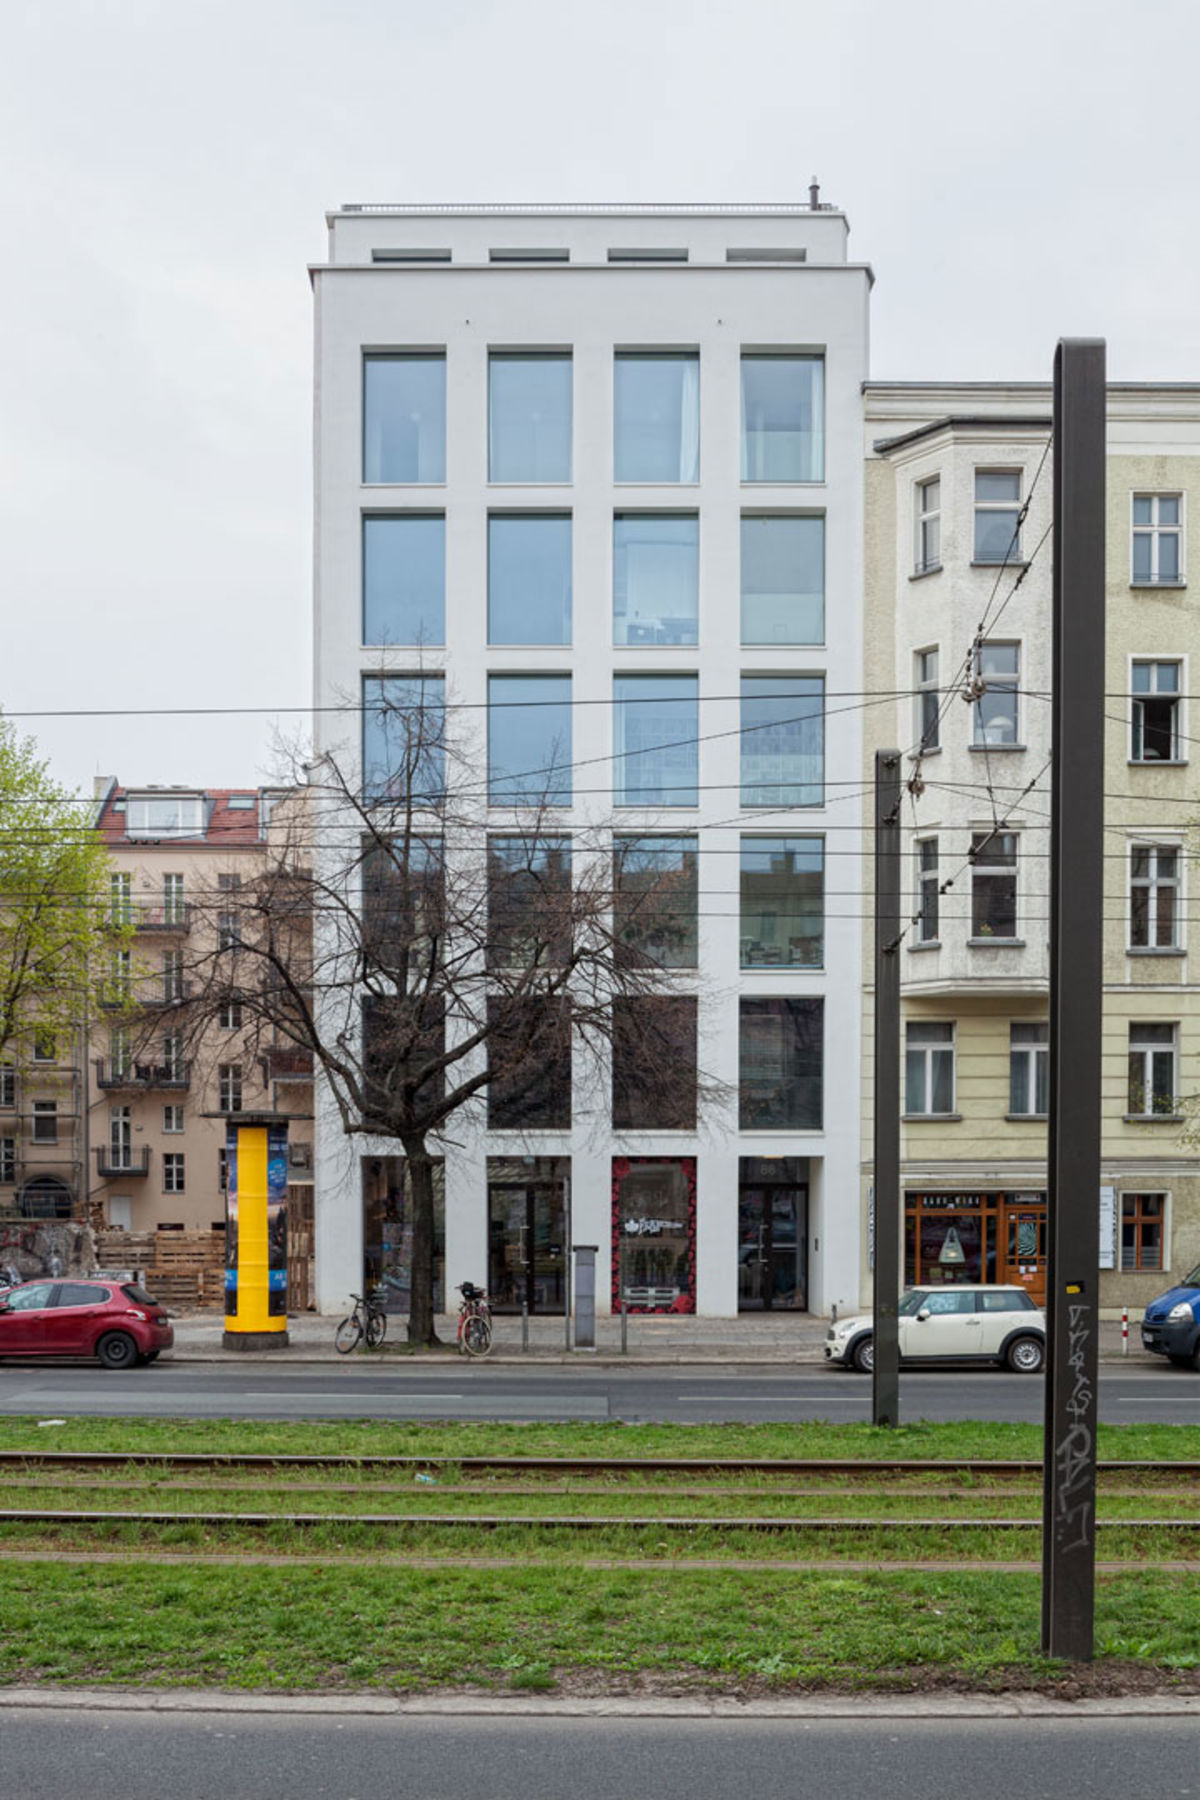 Ulrich schwarz · ìapartment house in berlin mitte · divisare